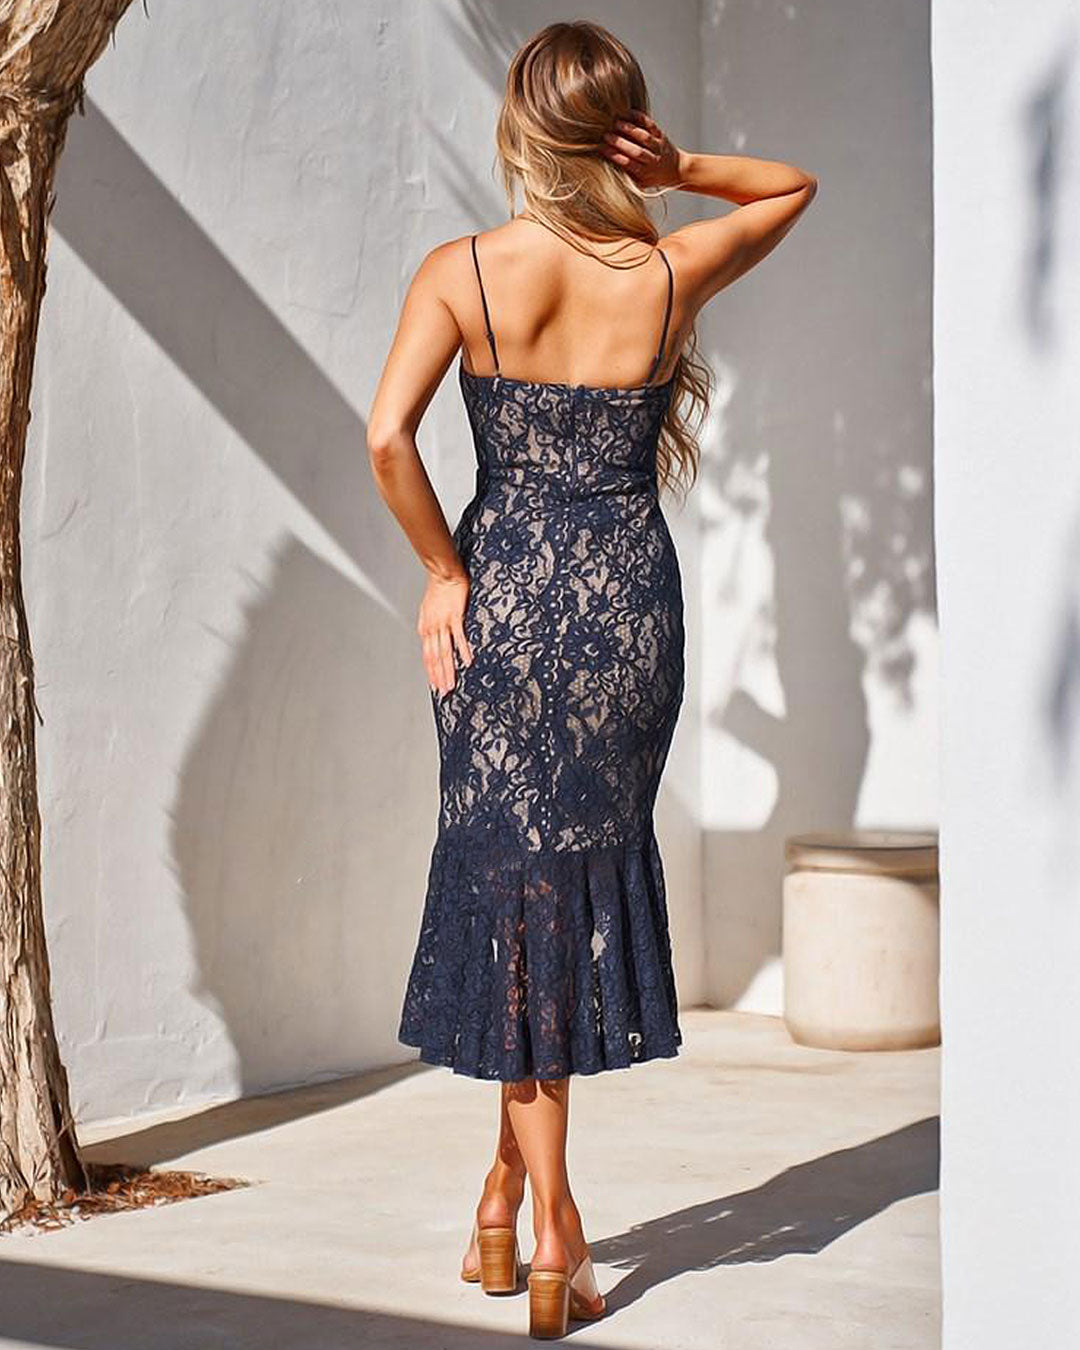 Amylia Lace Midi Dress - Navy - Miss Runway Boutique